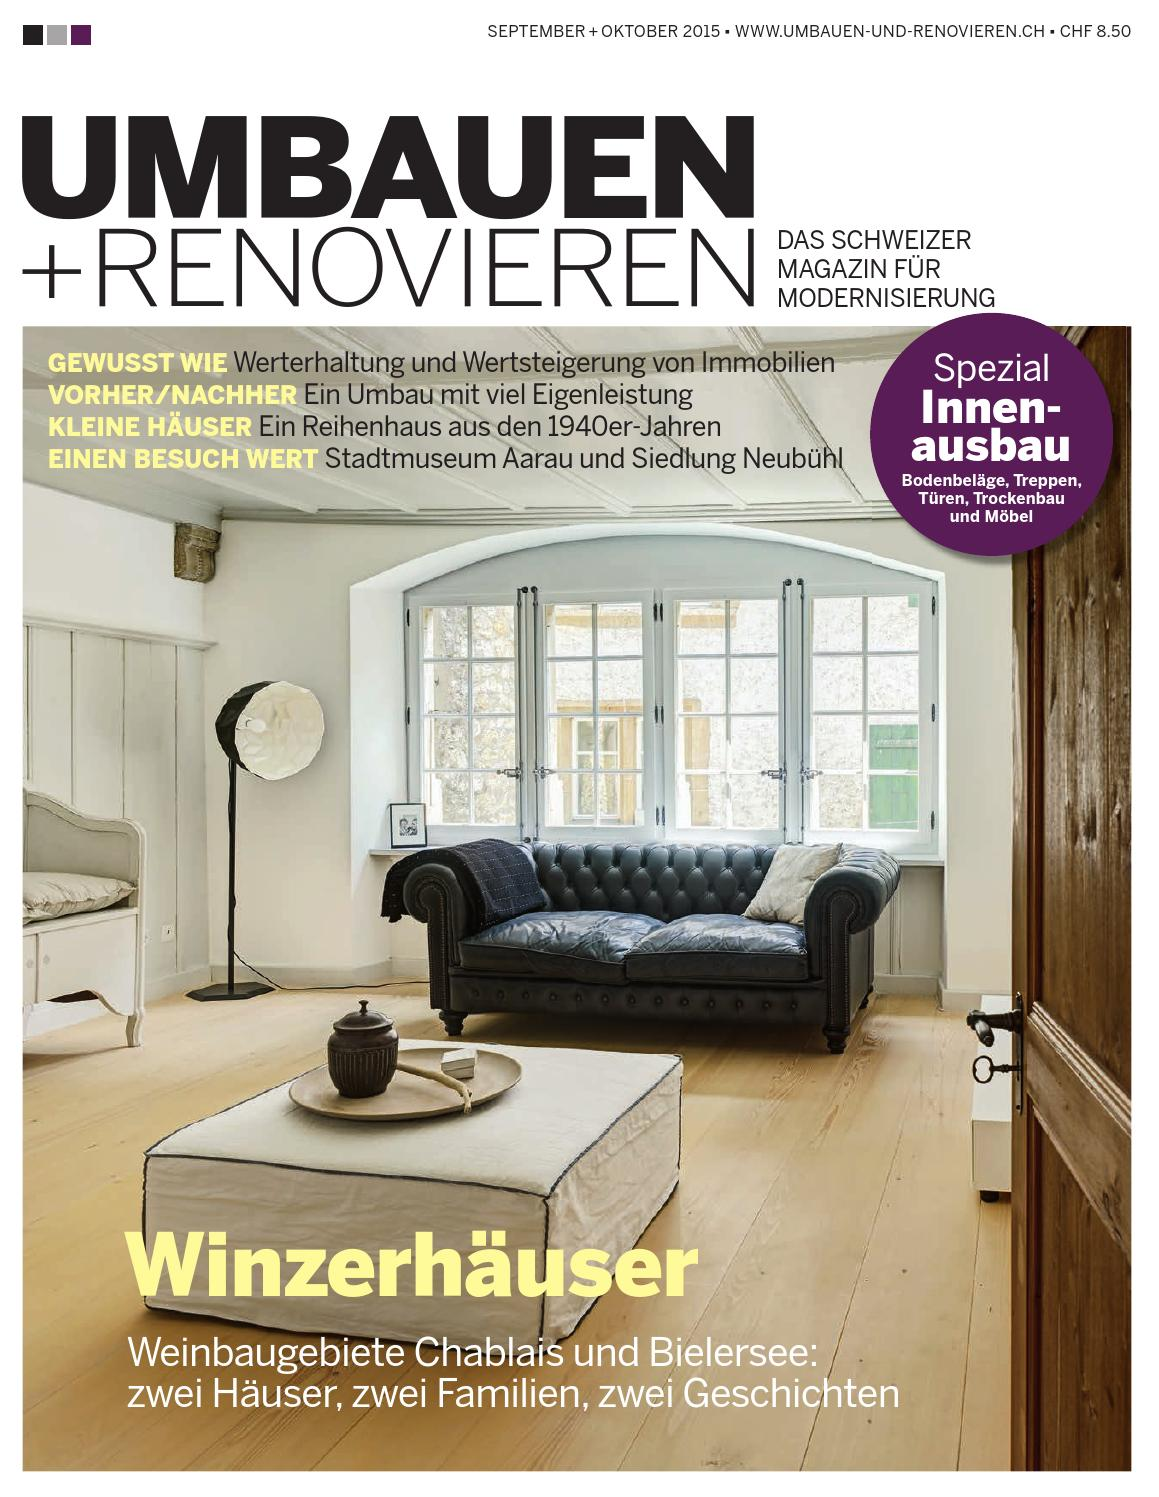 umbauen renovieren 5 2015 by archithema verlag issuu. Black Bedroom Furniture Sets. Home Design Ideas